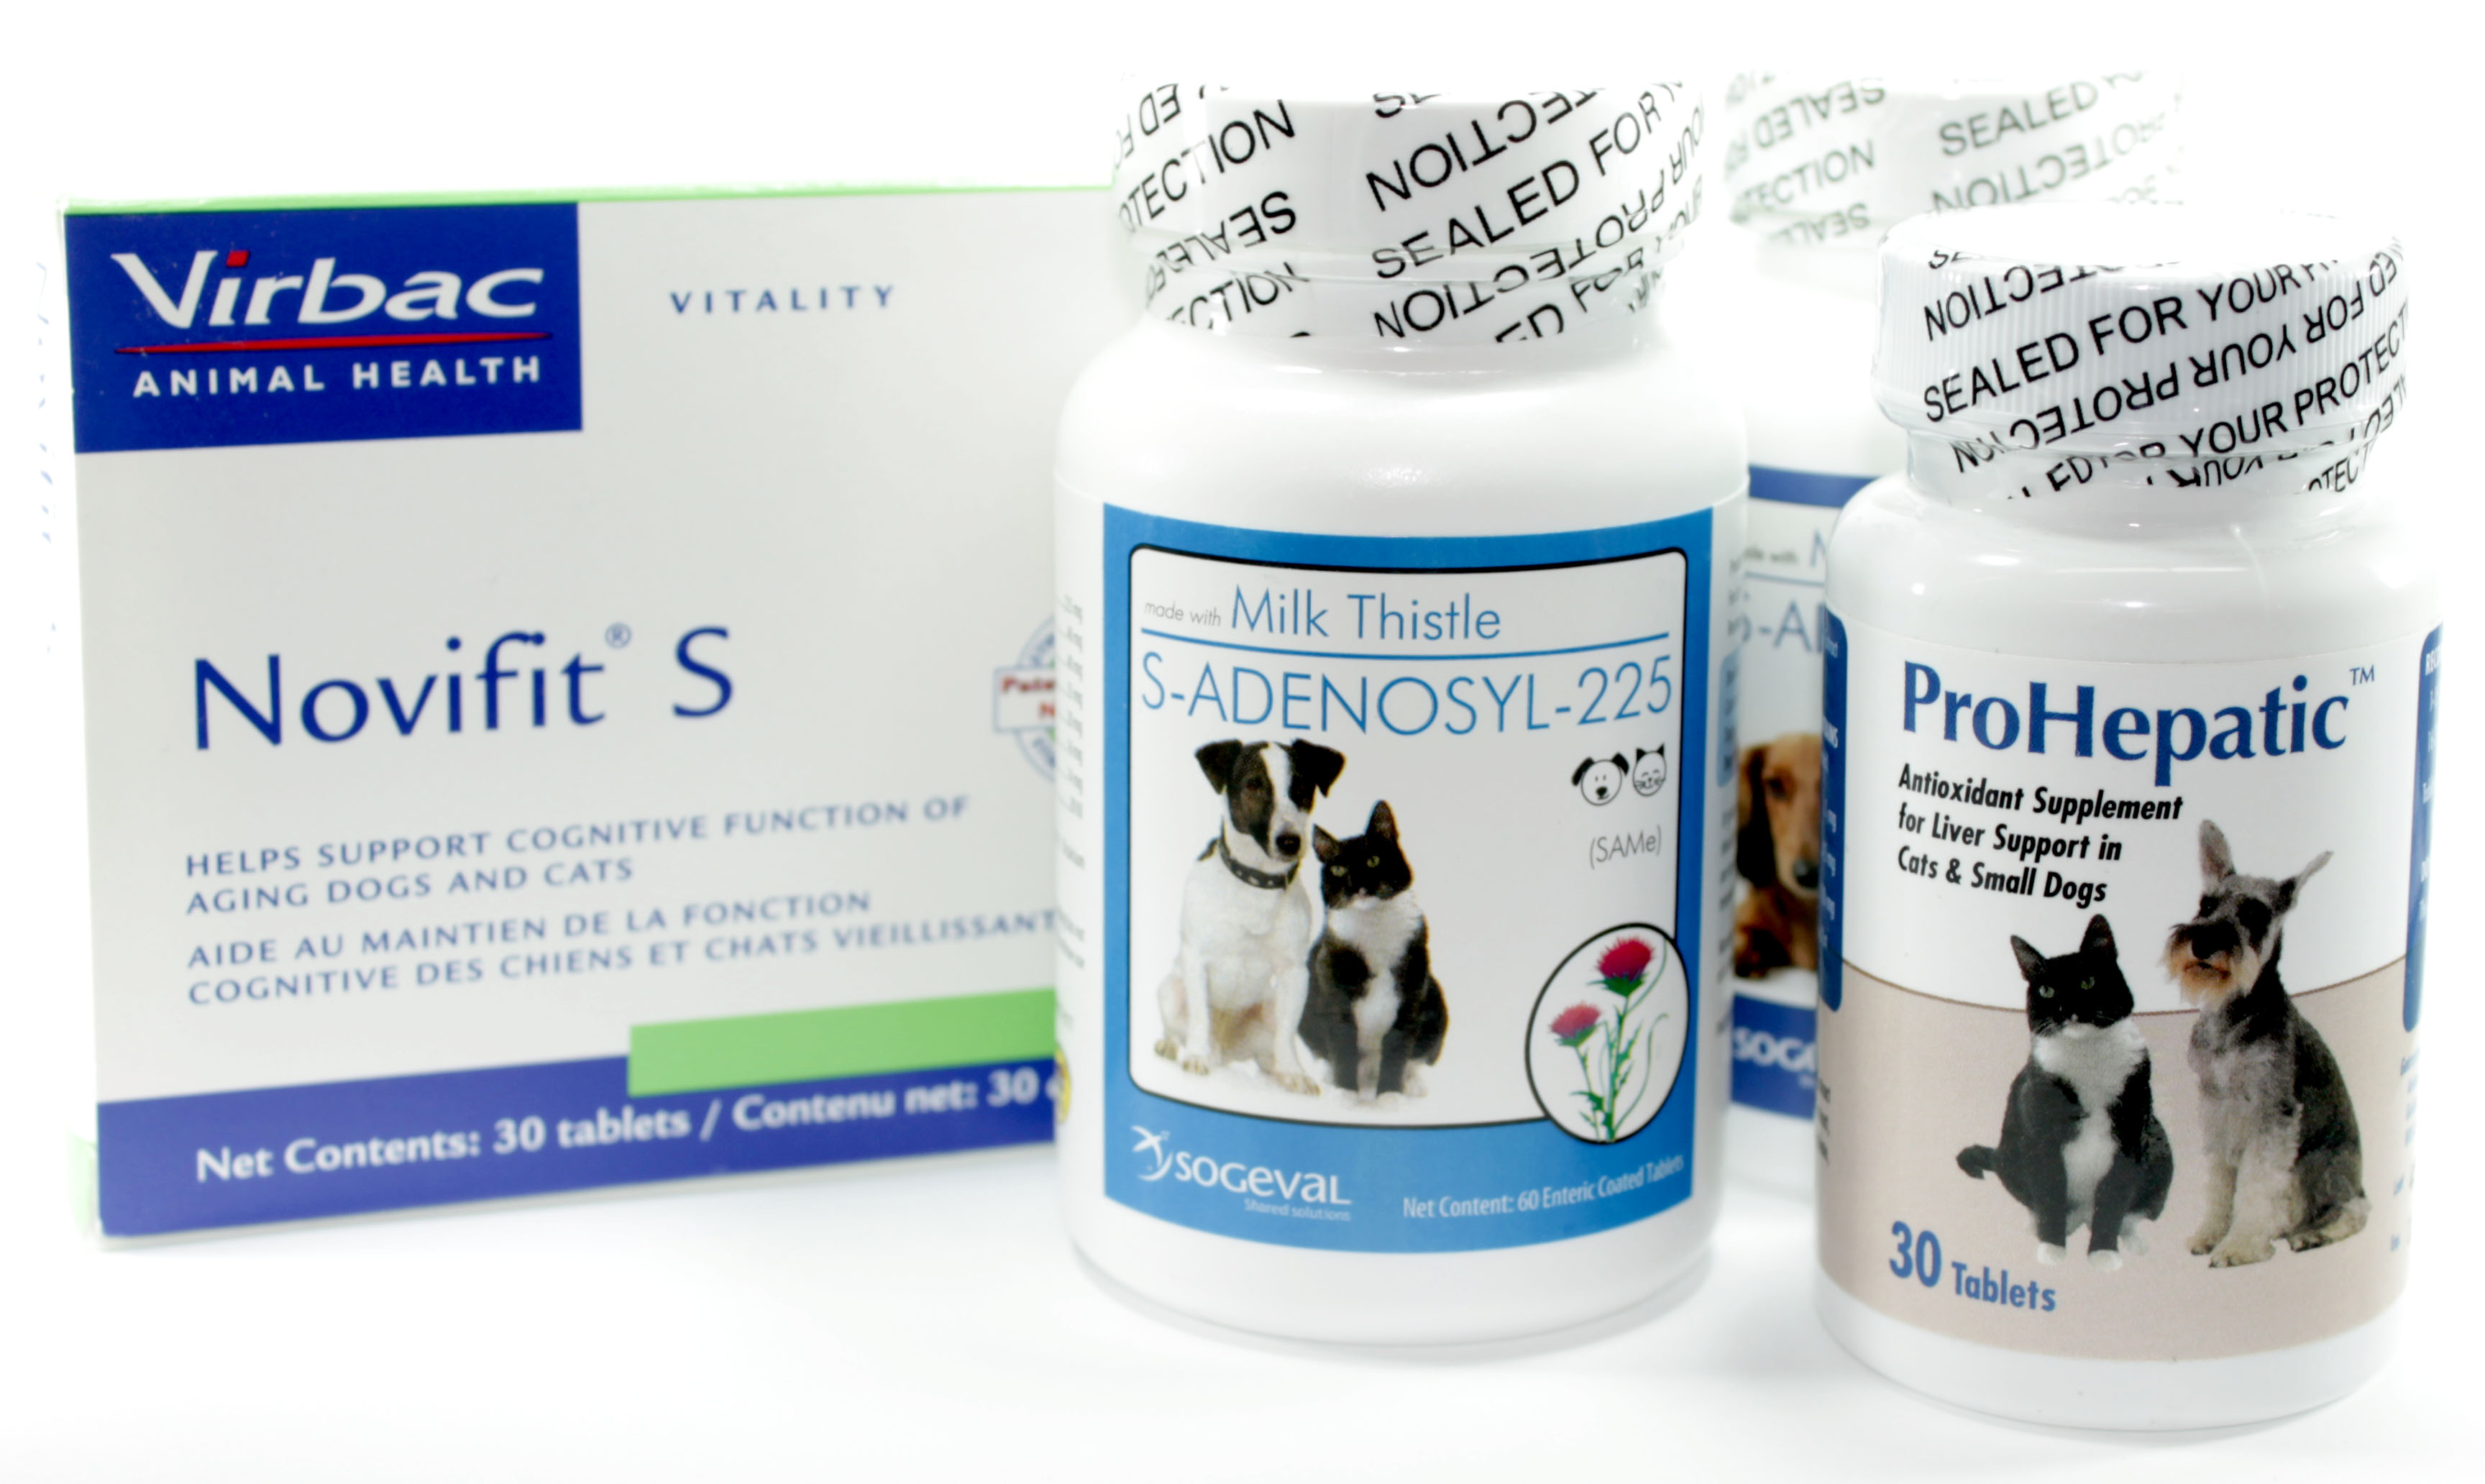 Liver Support Supplements For Pets Vetrxdirect Blogvetrxdirect Blog